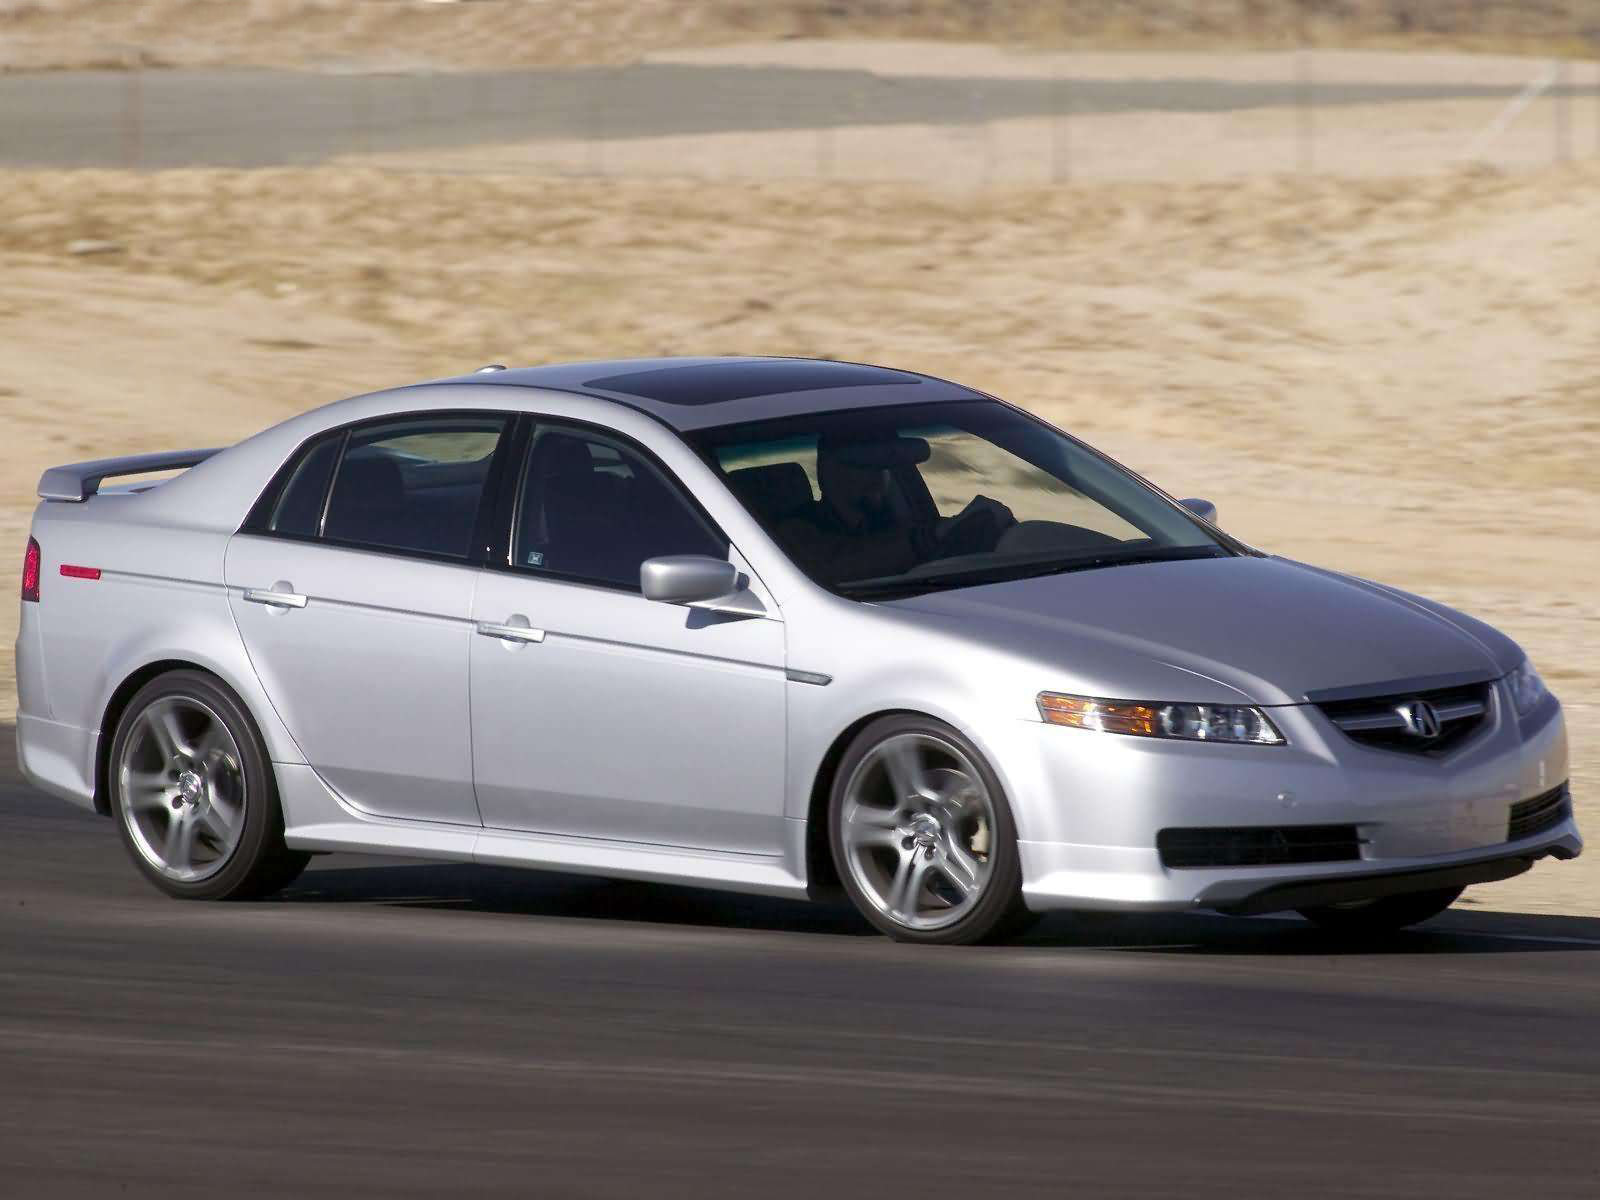 2004 Acura TL with ASPEC Performance Package photo - 3